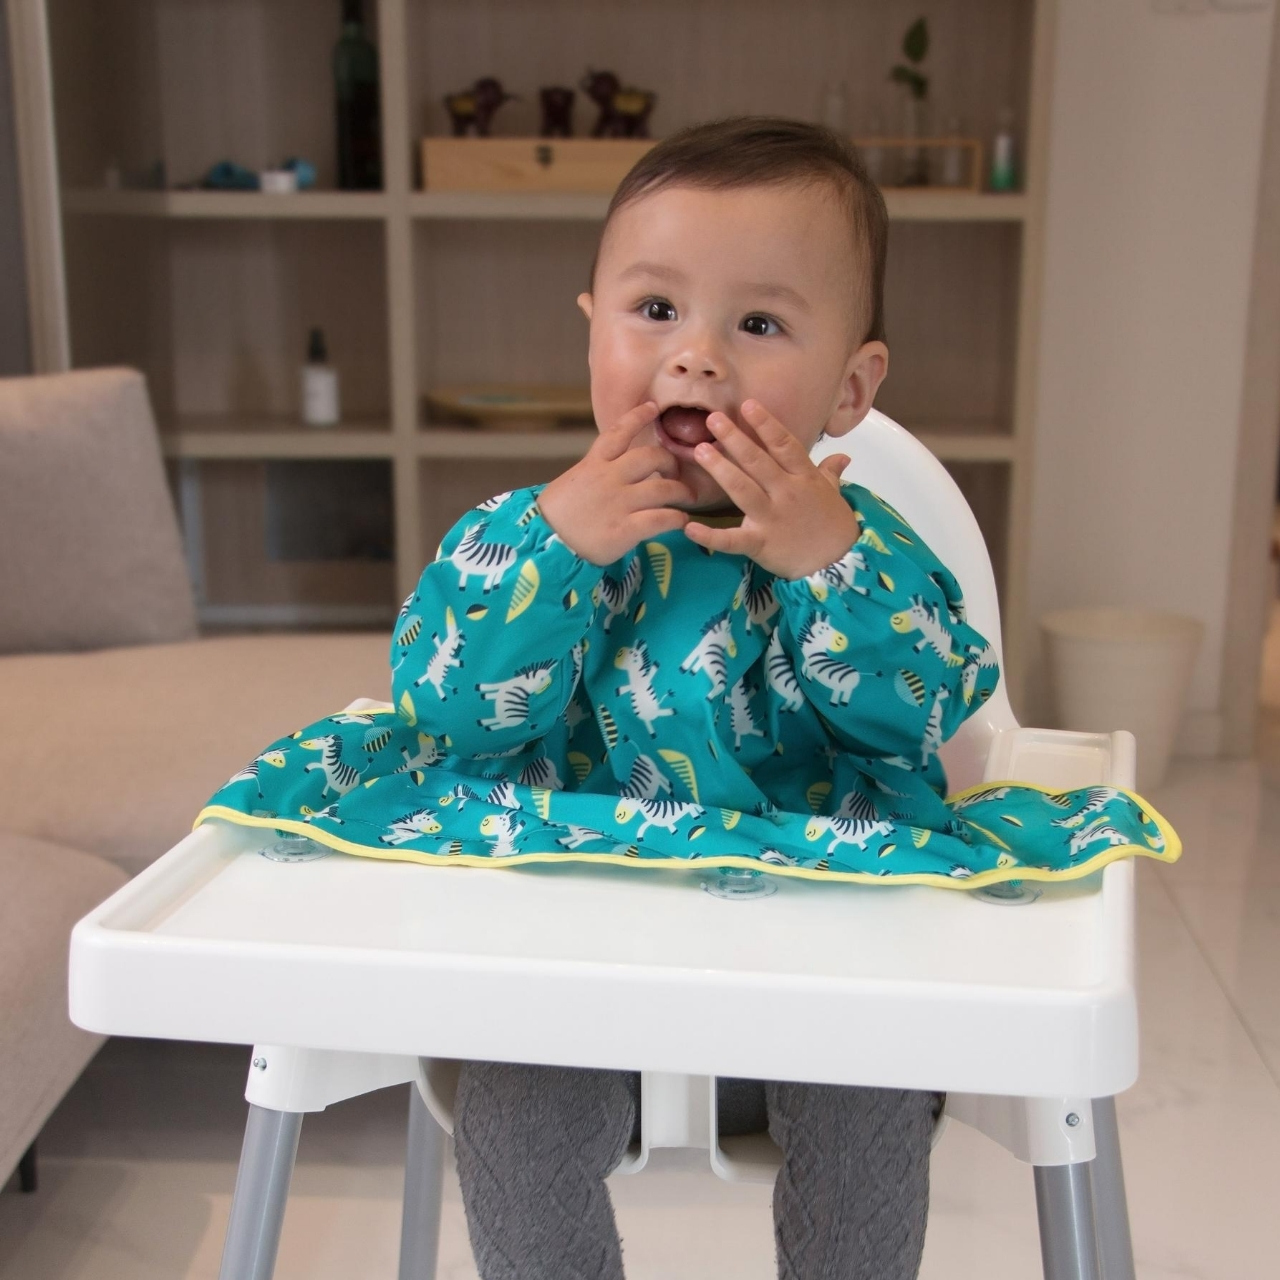 Dadsnet Product Awards 2020 - Winners Revealed, Long Sleeve CC cropped 1%, daily-dad%